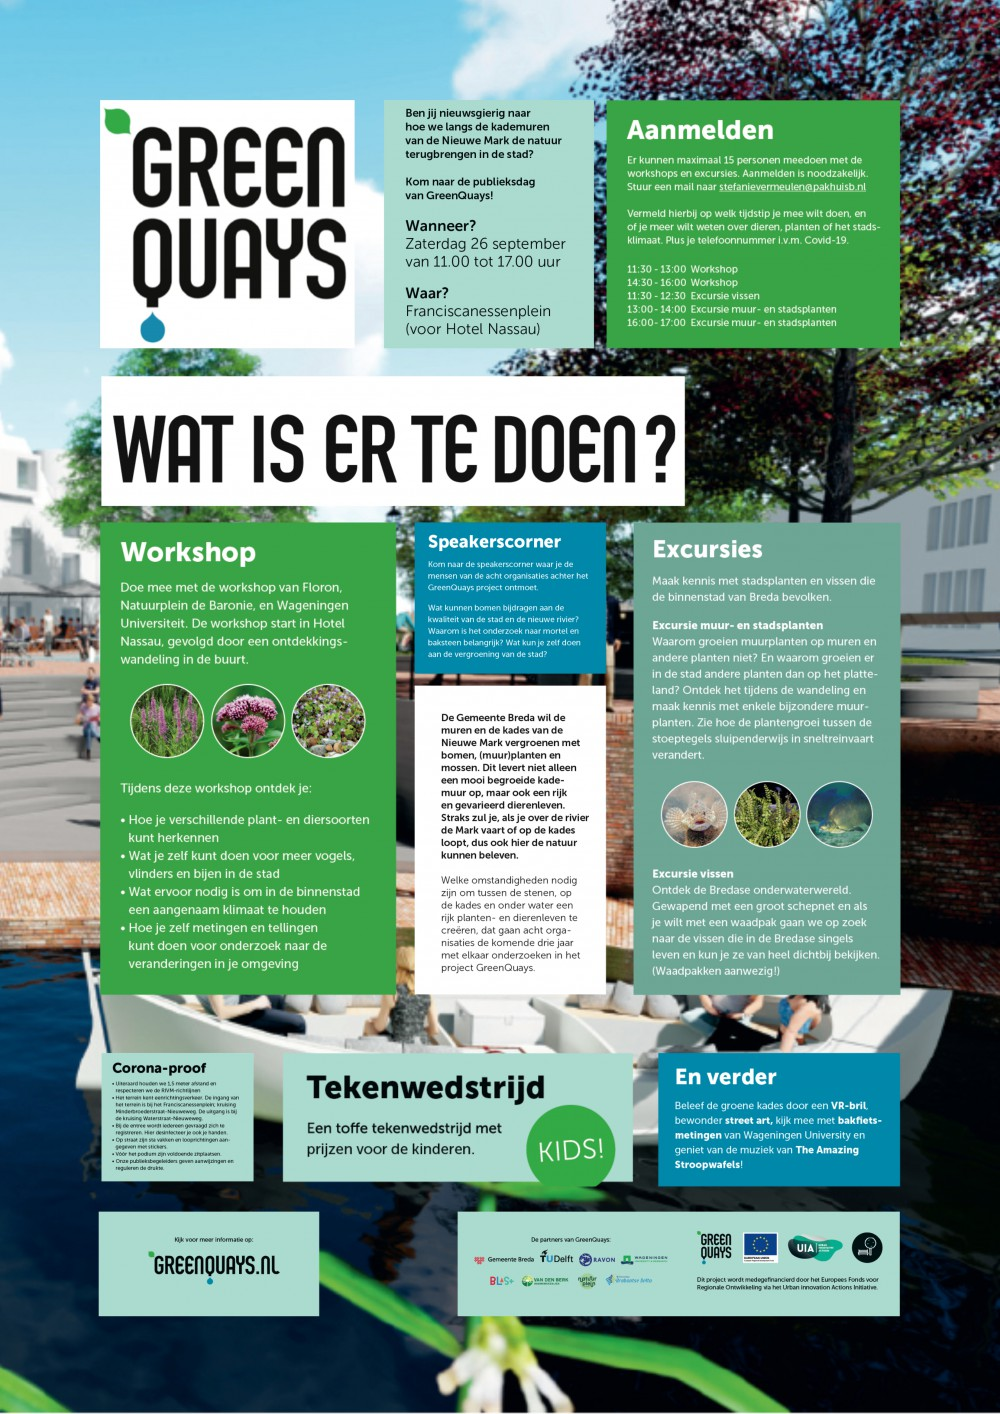 GreenQuays - Publieksdag